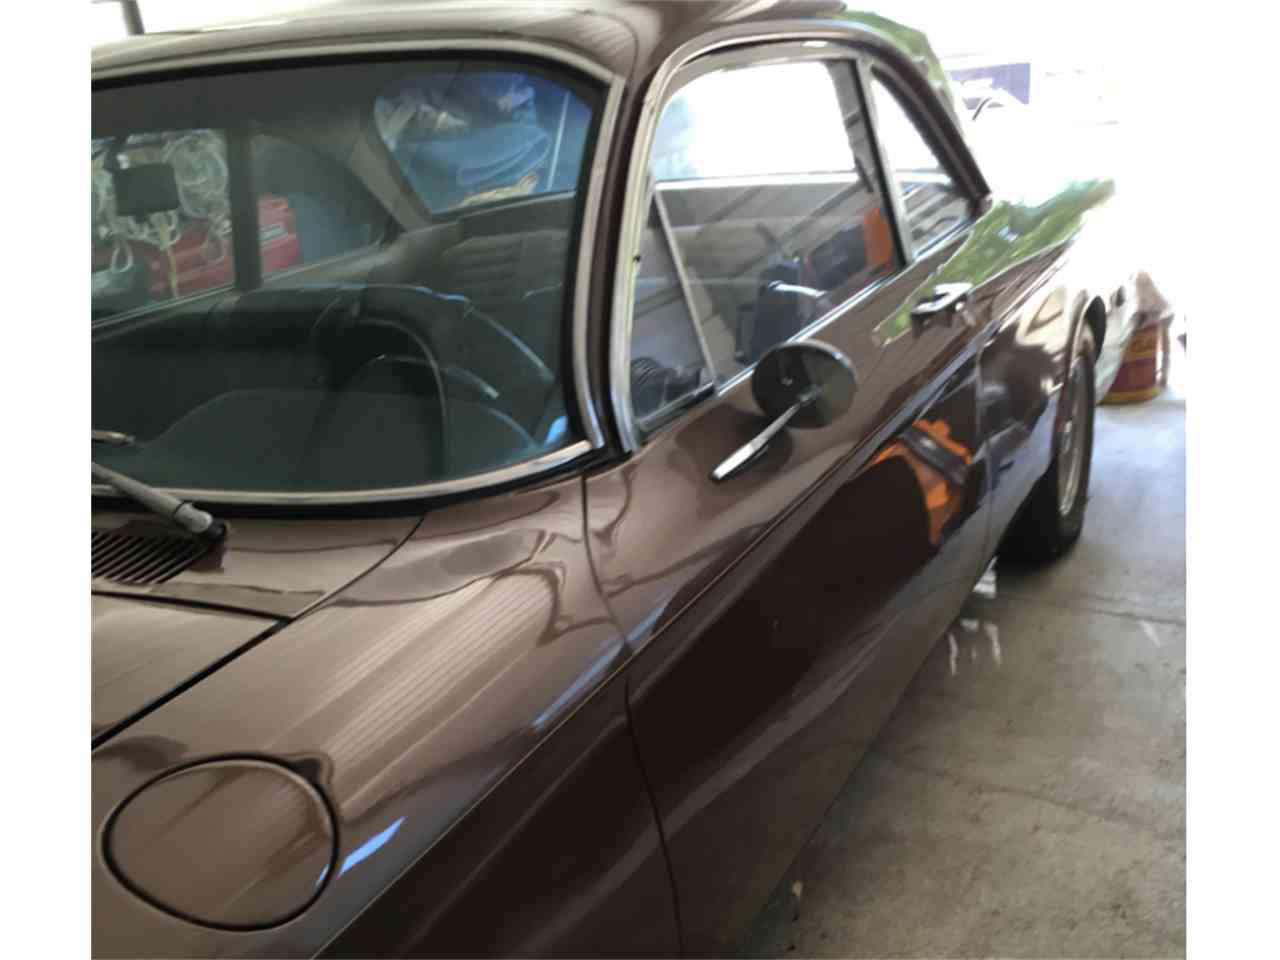 Large Picture of '64 Corvair Monza - JH6Z